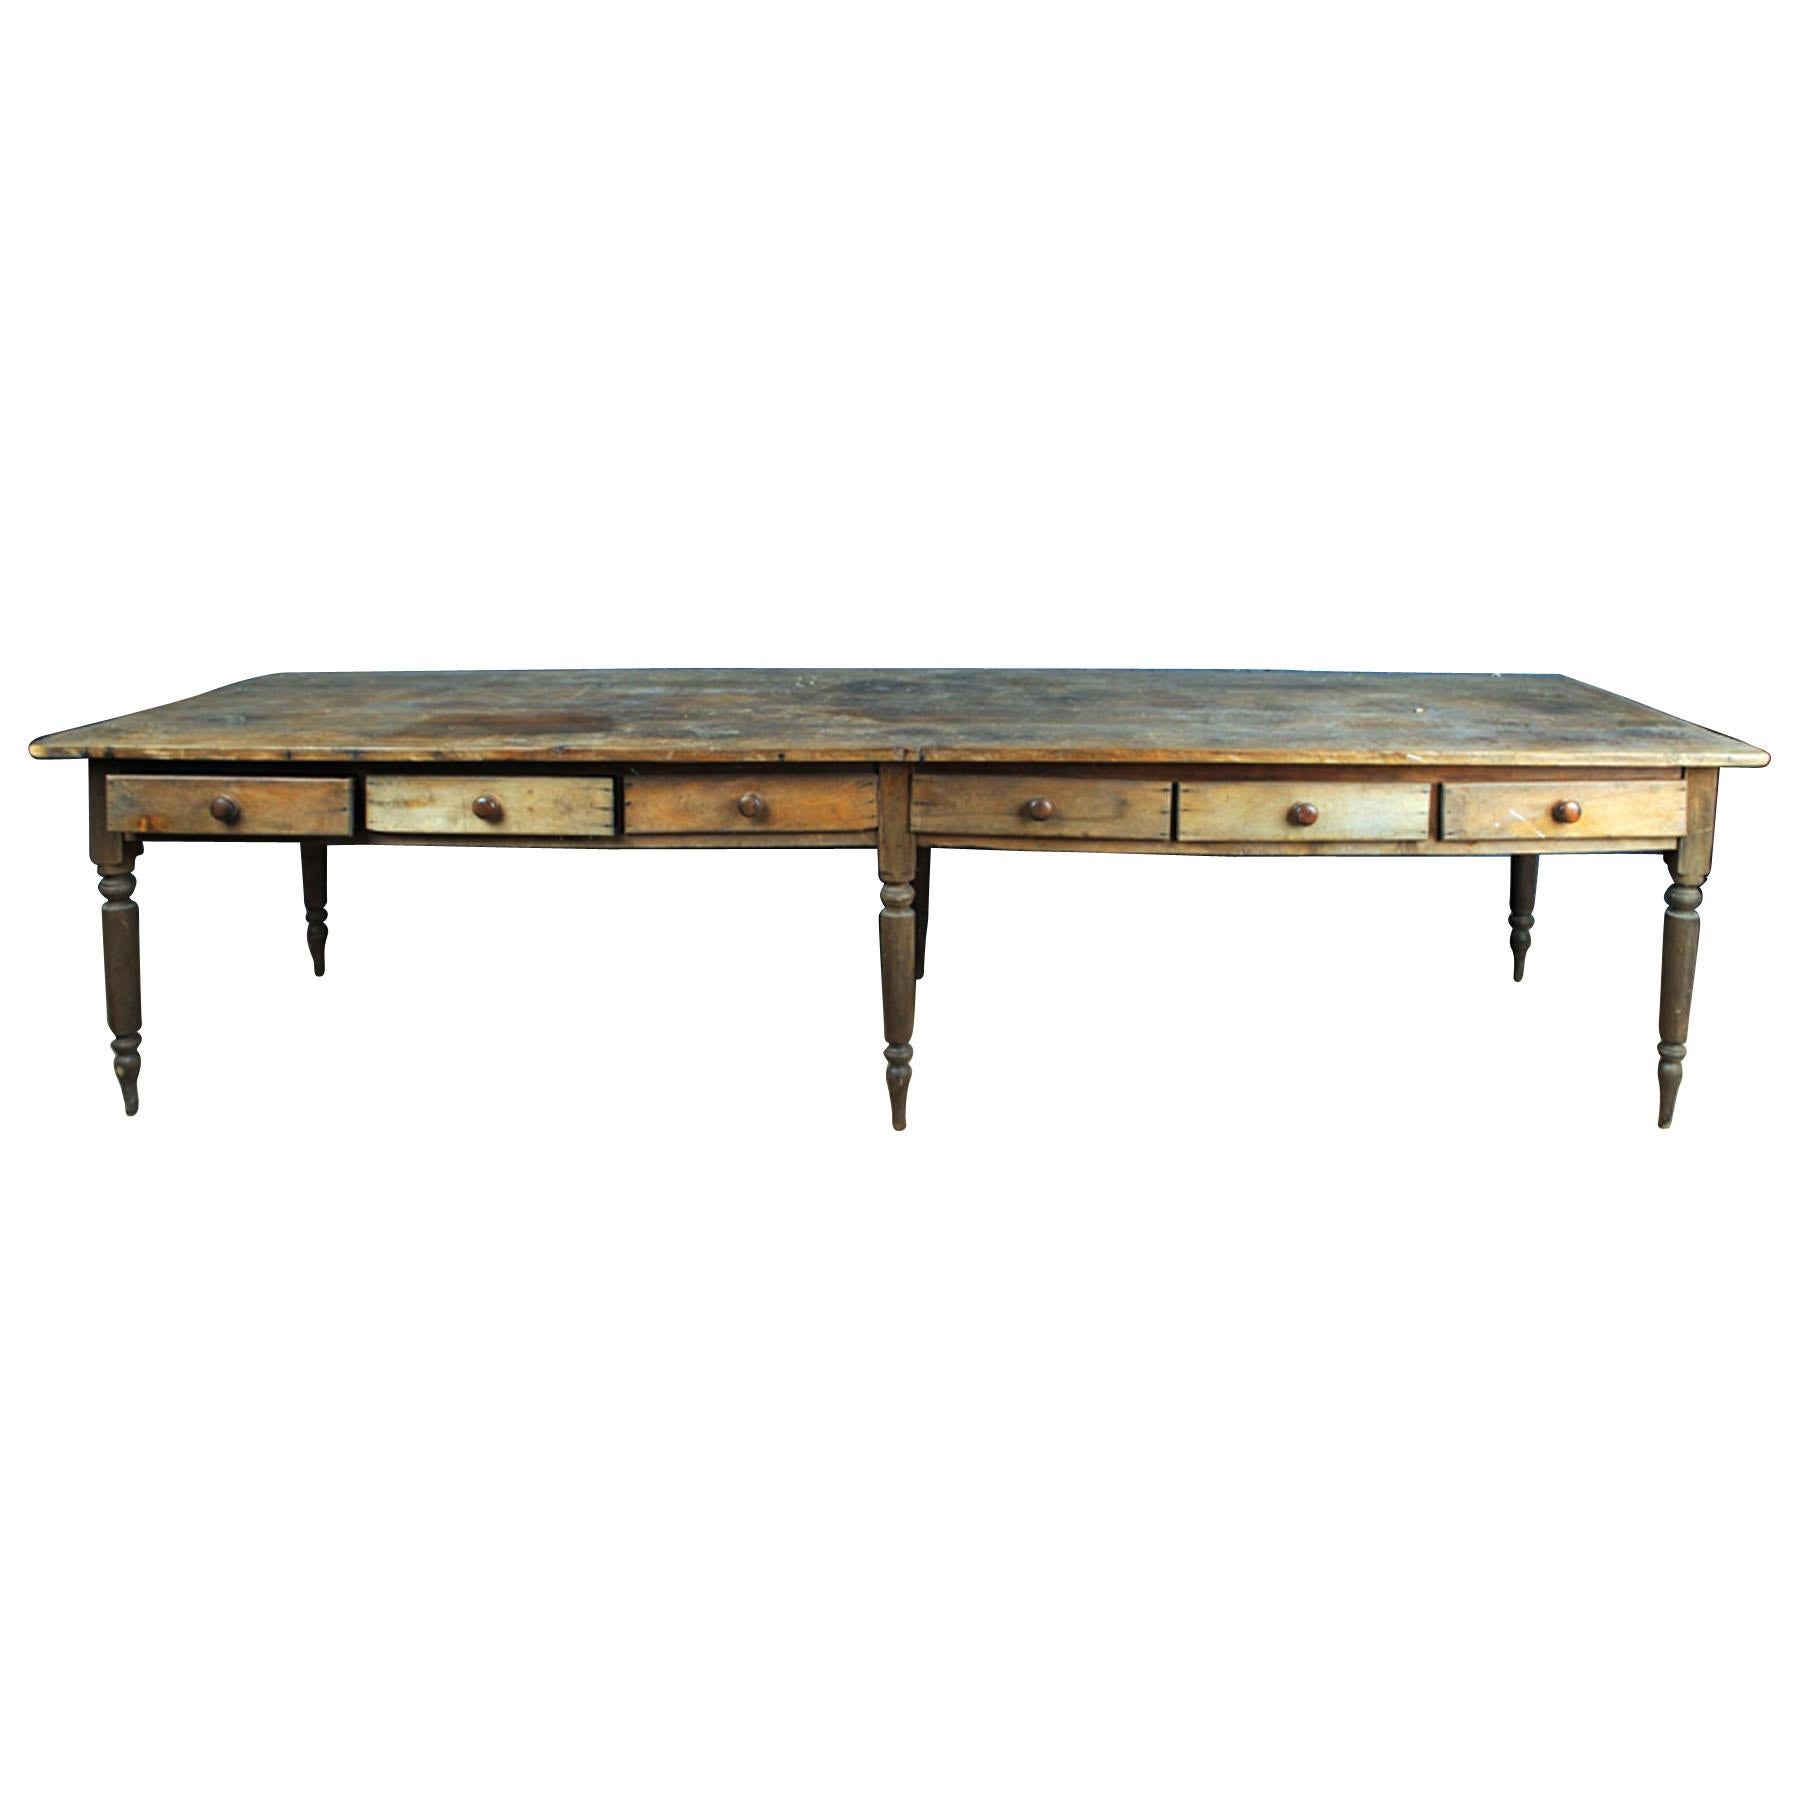 Early 20th Century Rustic Farm Table